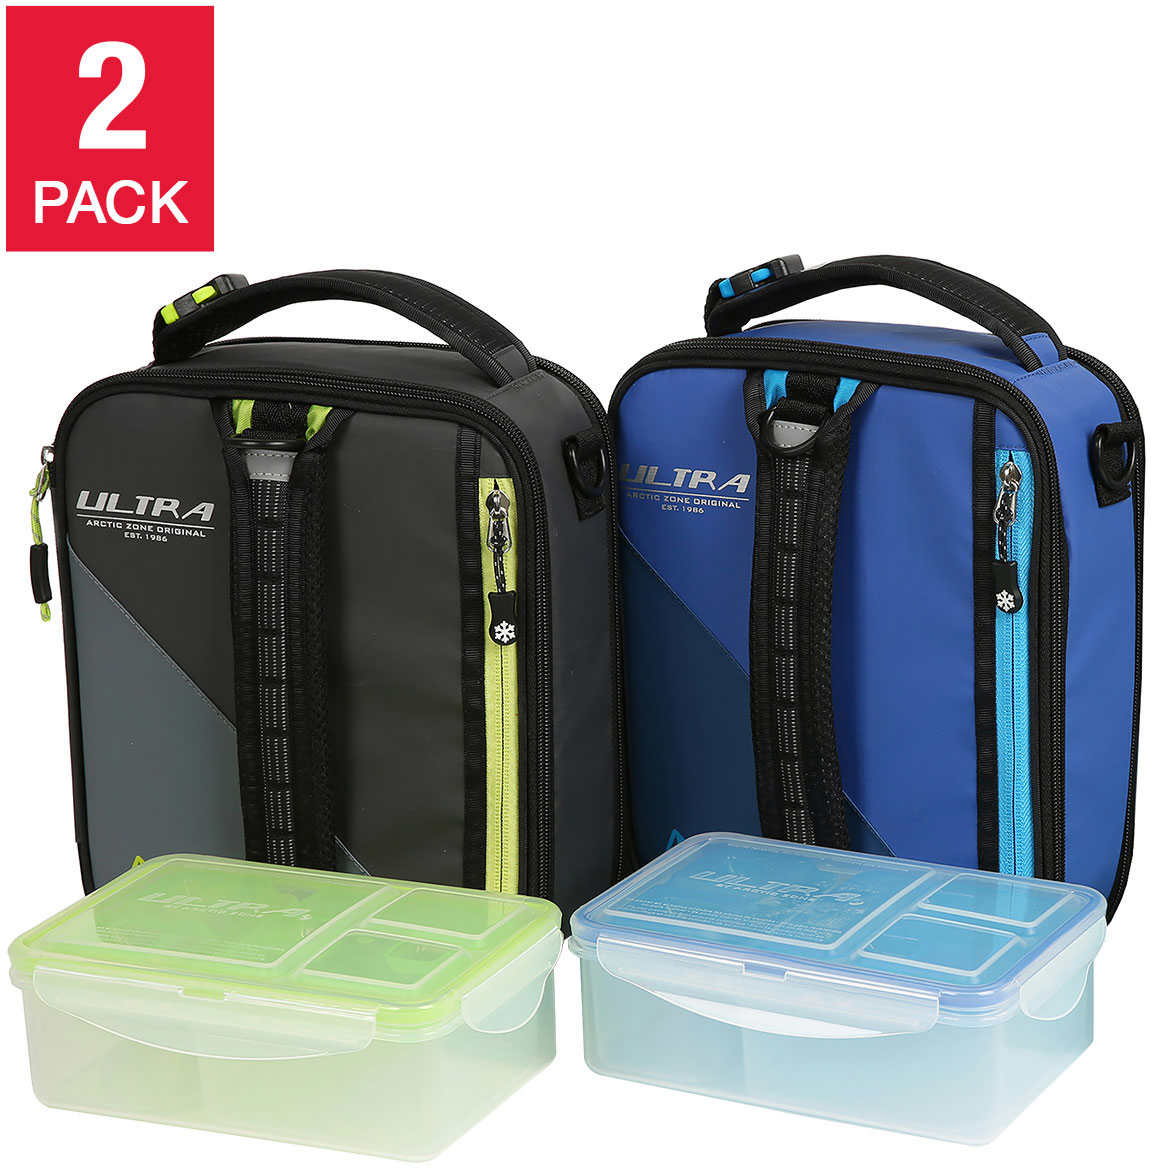 Details About 2 Pack Arctic Zone Ultra Expandable Lunch Box